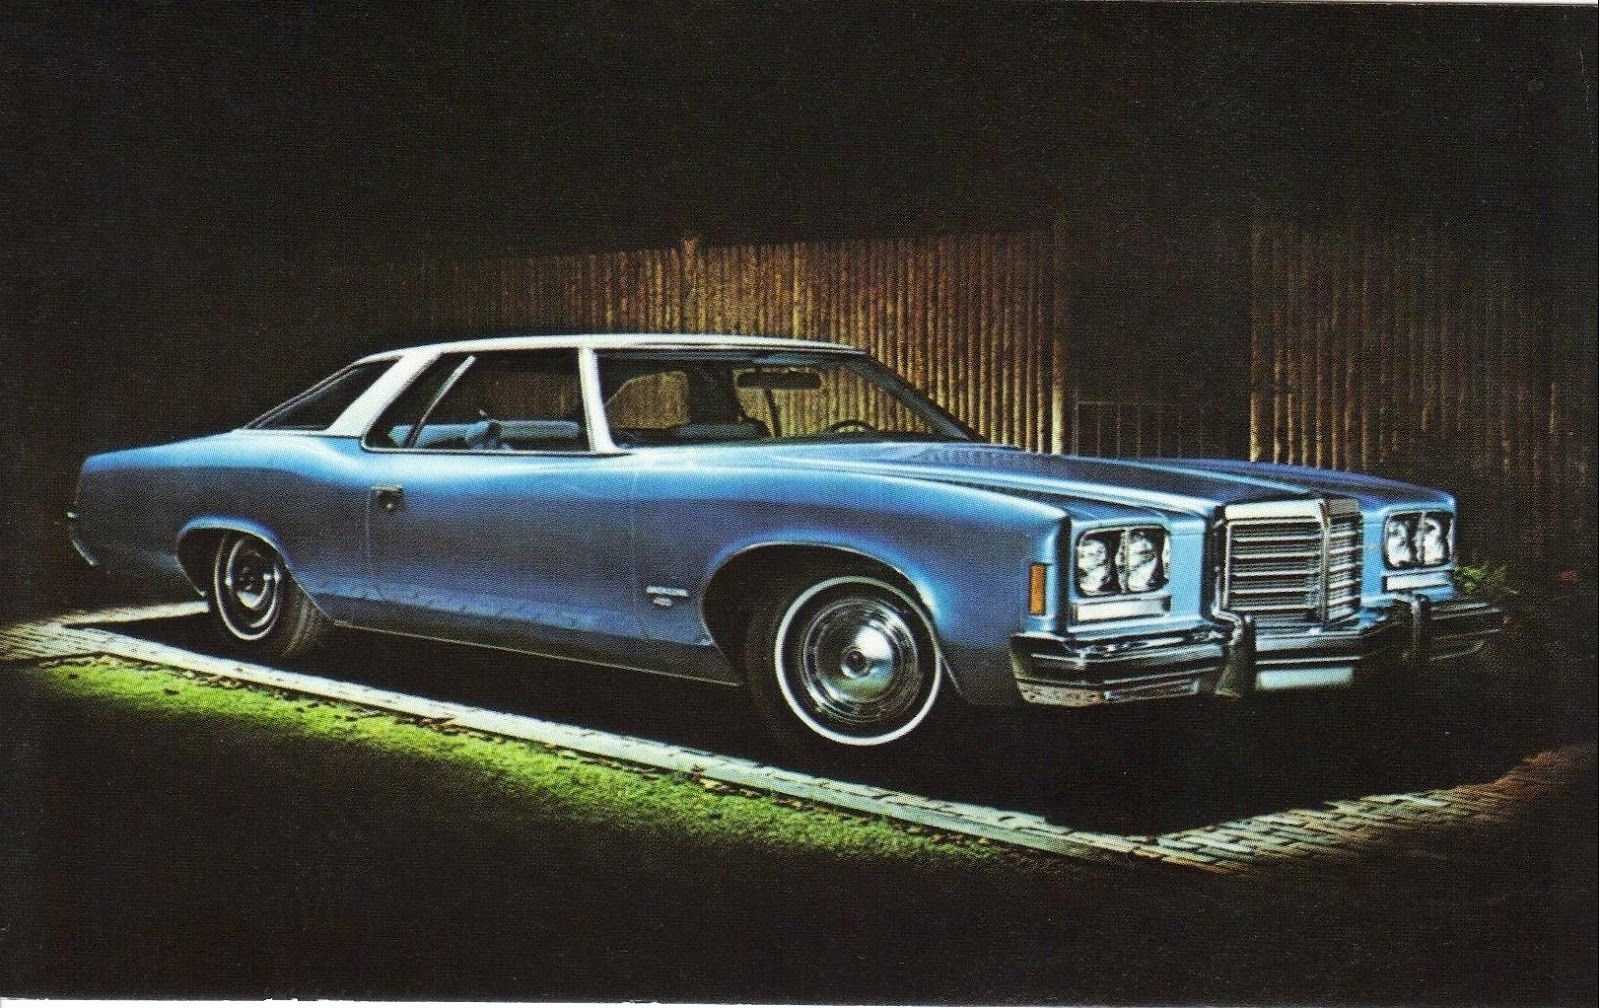 1976 Pontiac Catalina 2 Door Hardtop This Was The Sixth And Last Car I Remember My Dad Owning It Was This Same Blue On Th Pontiac Catalina Pontiac Catalina